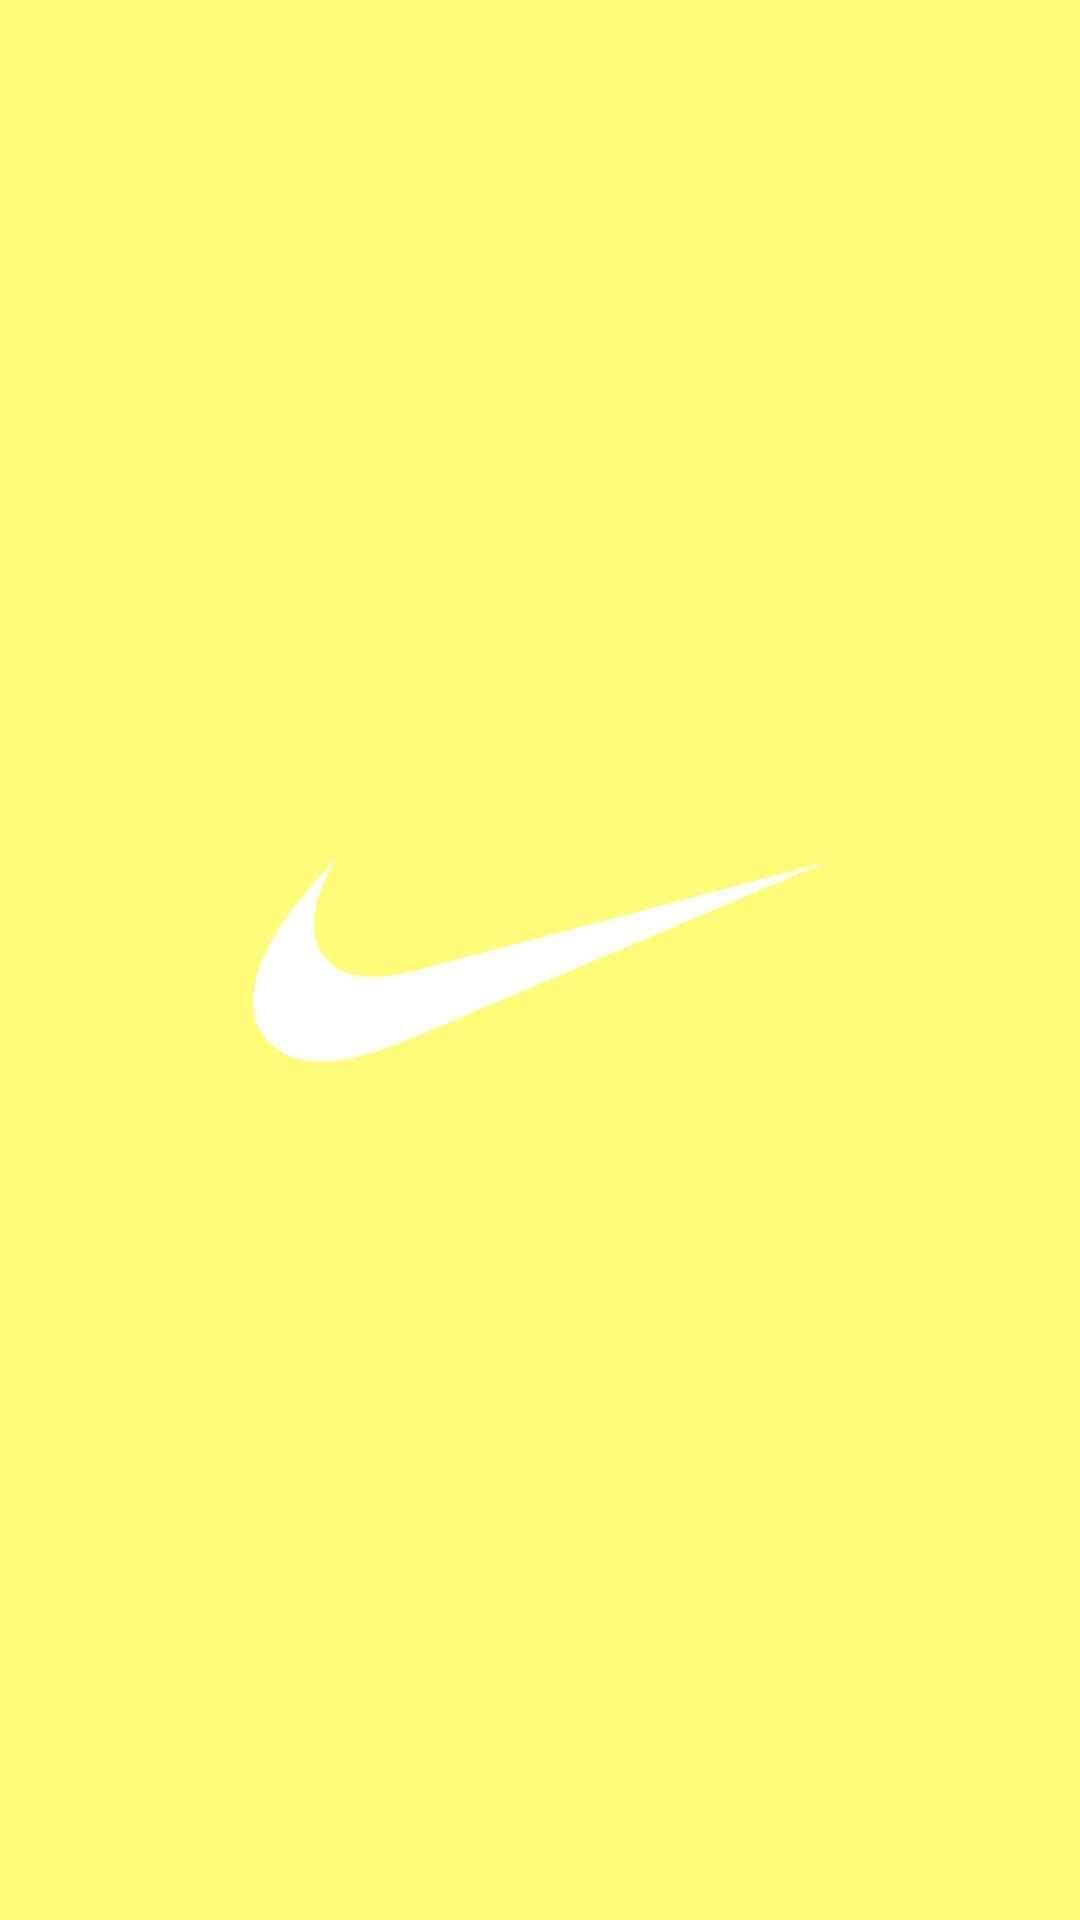 Neon Yellow Wallpapers Top Free Neon Yellow Backgrounds Wallpaperaccess